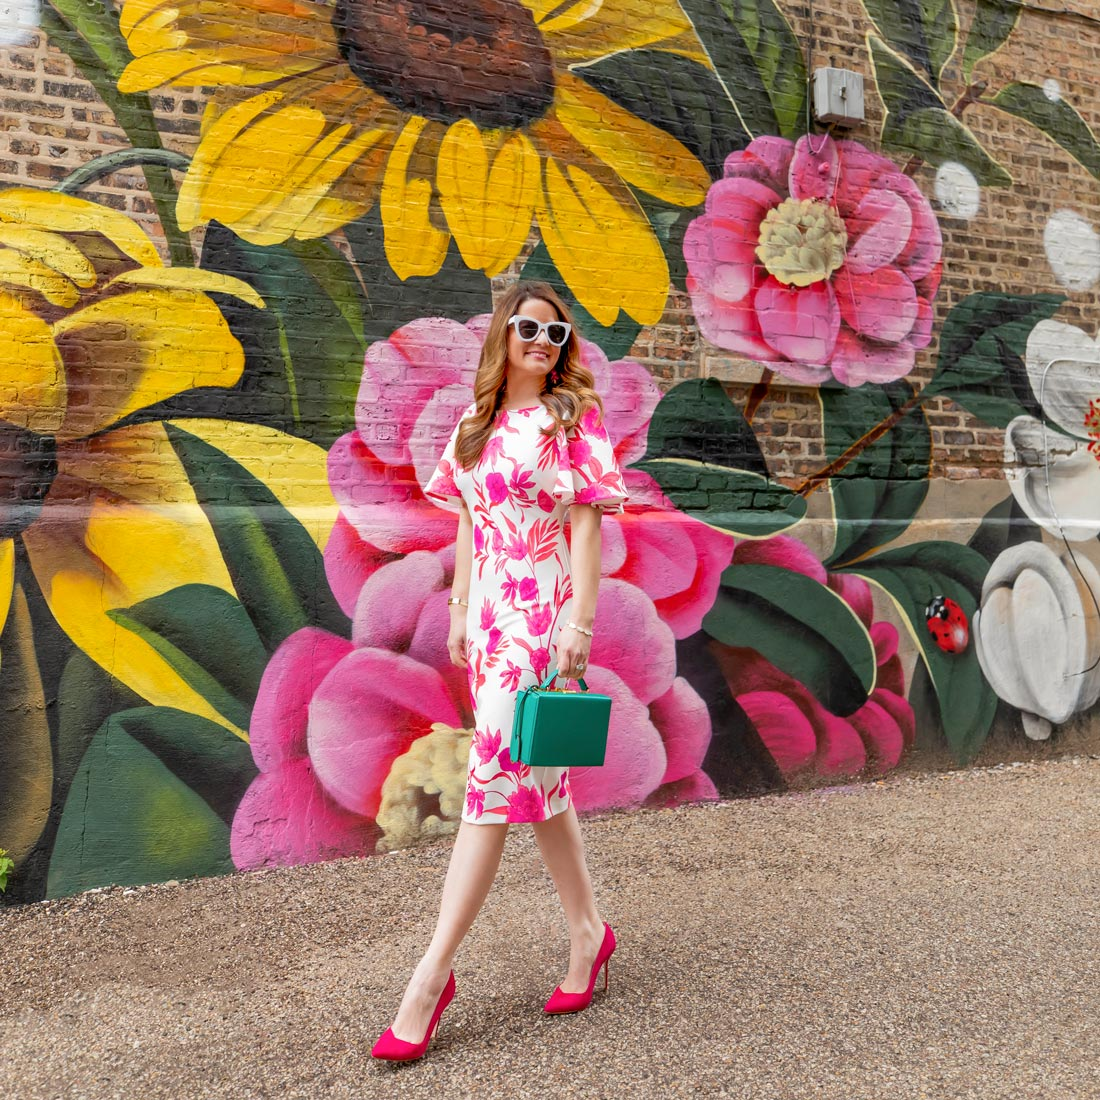 Louise Jones 0uizi Floral Mural Chicago West Town